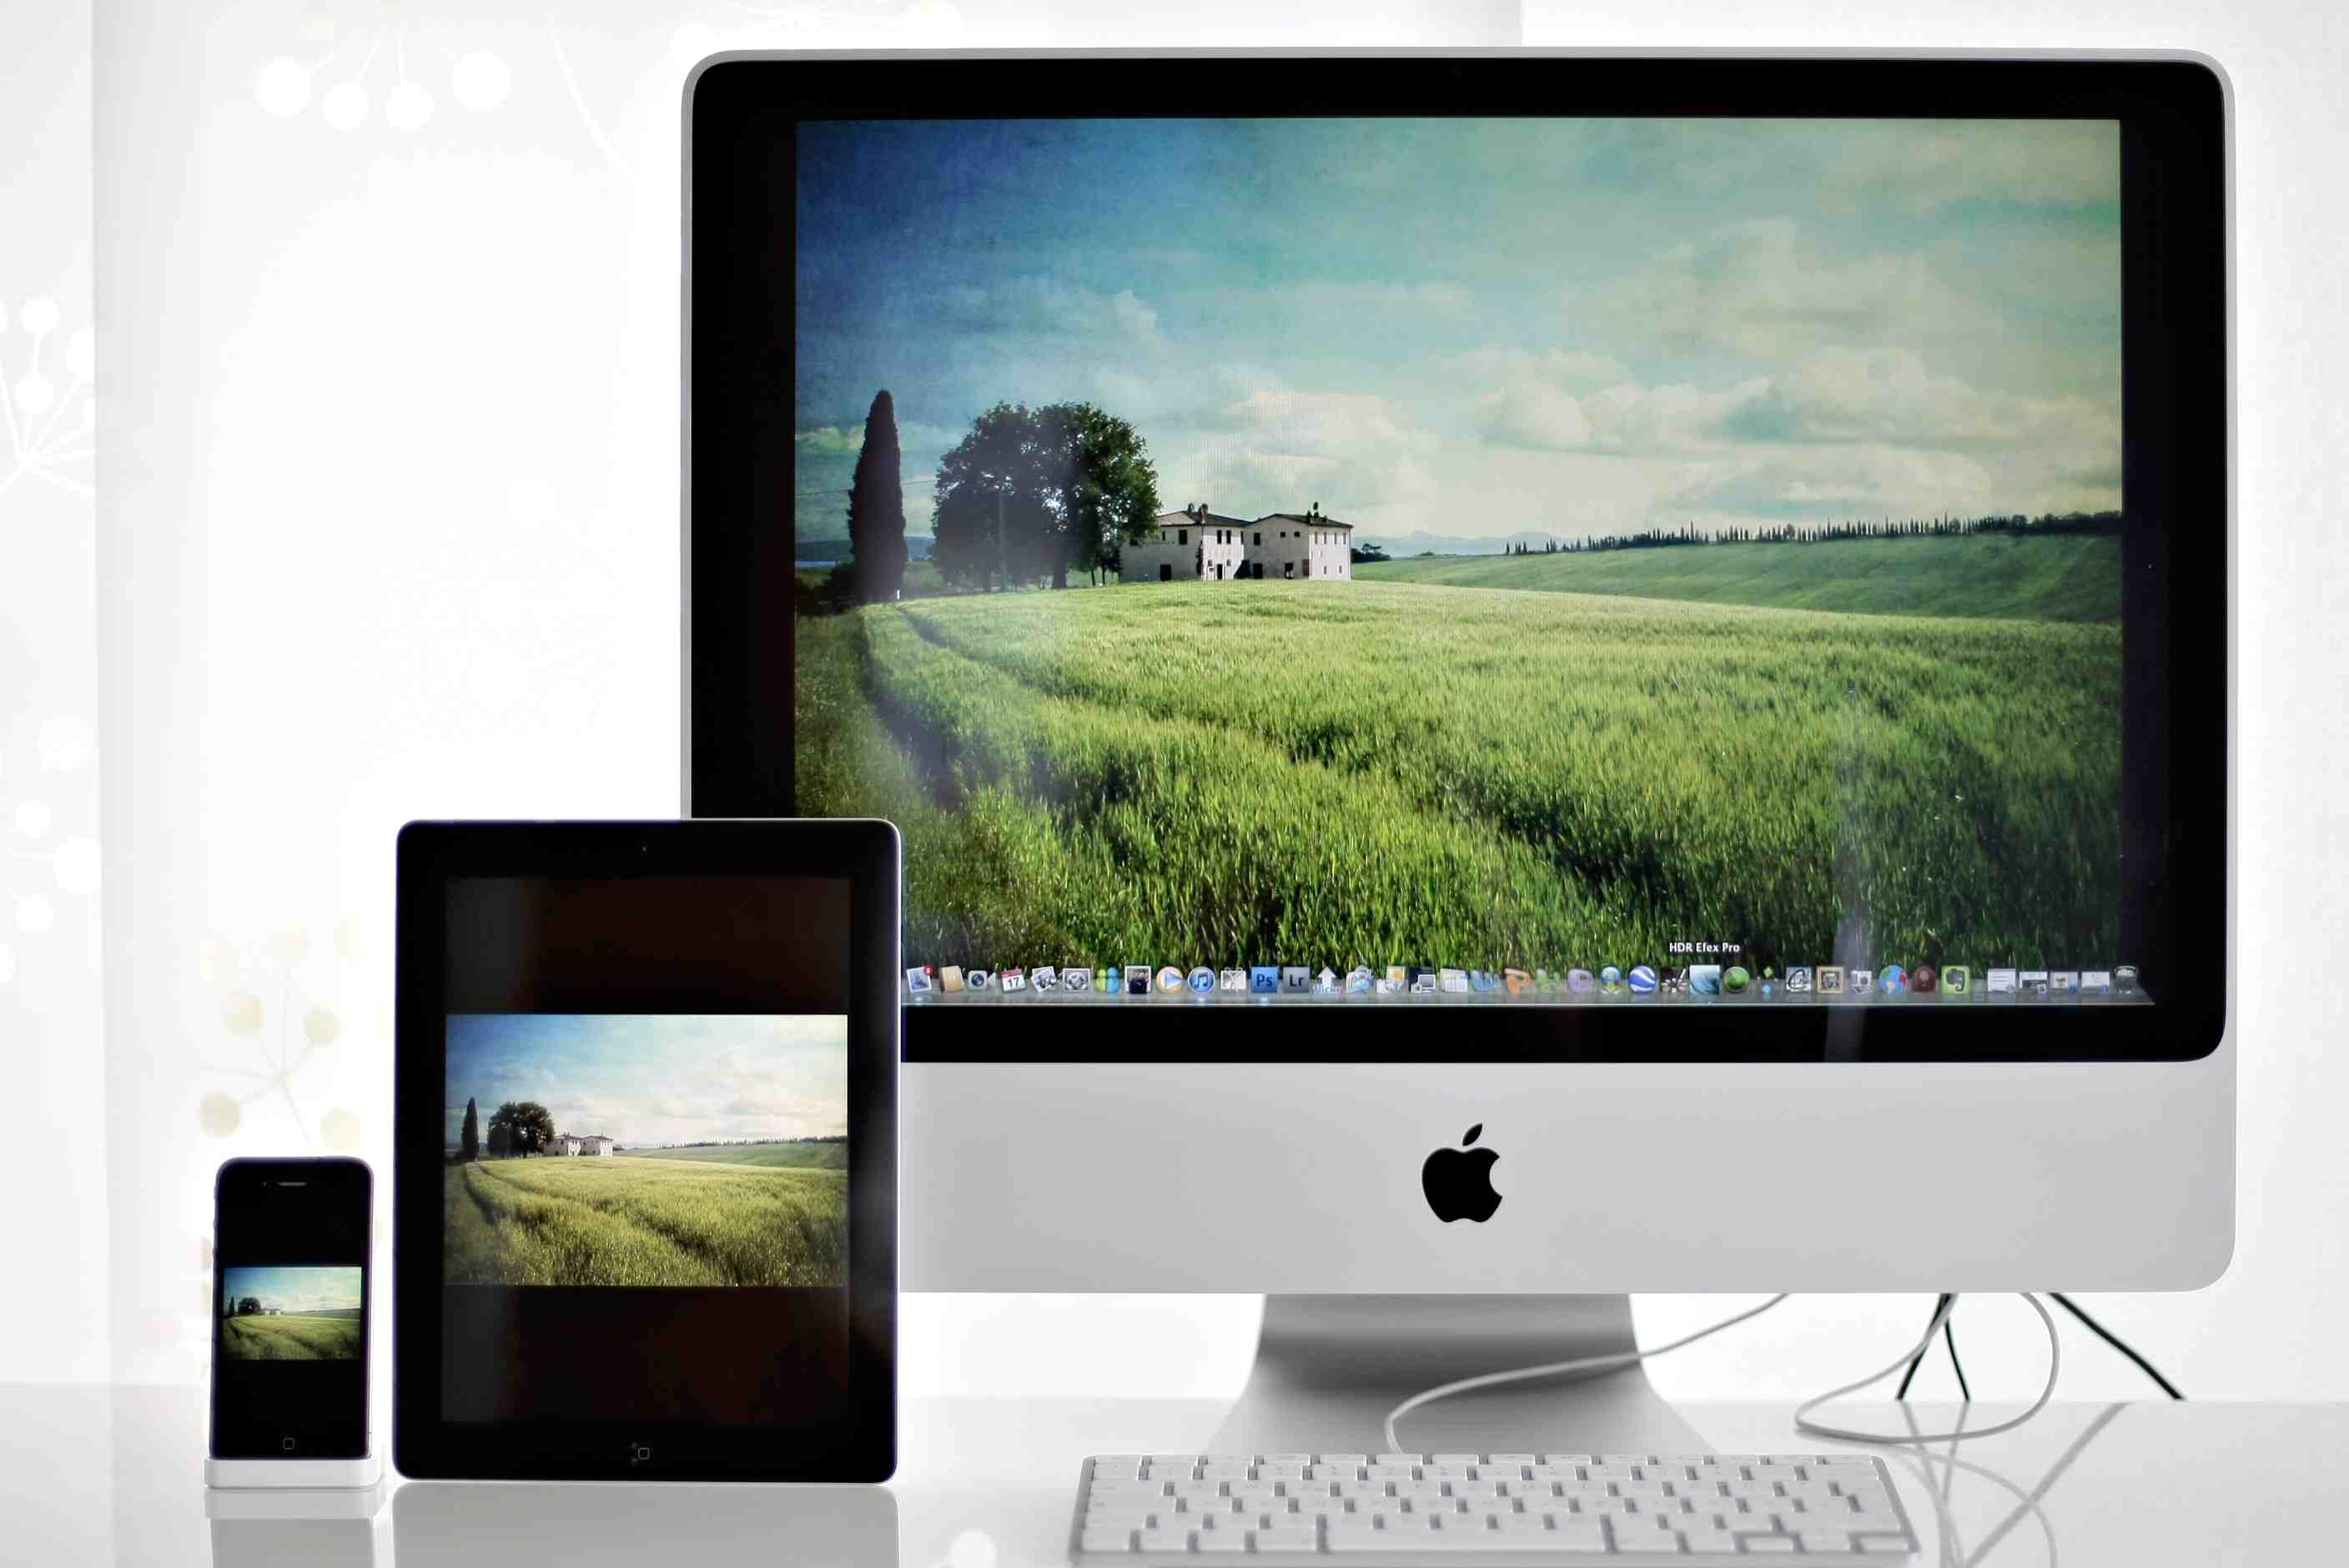 how to make desktop icons smaller mac